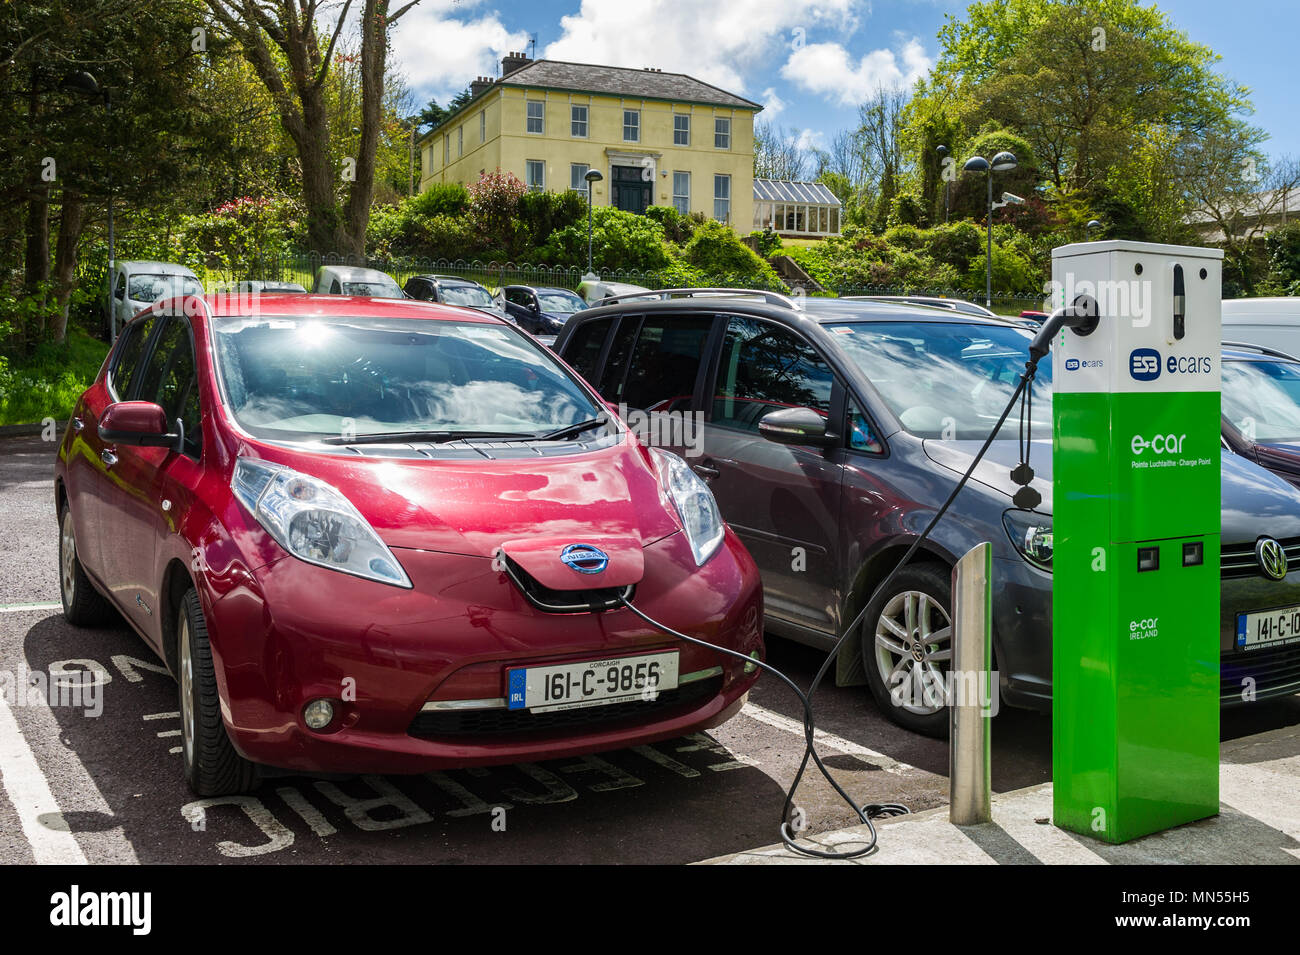 electric-car-being-charged-in-a-car-park-in-skibbereen-county-cork-ireland-MN55H5.jpg